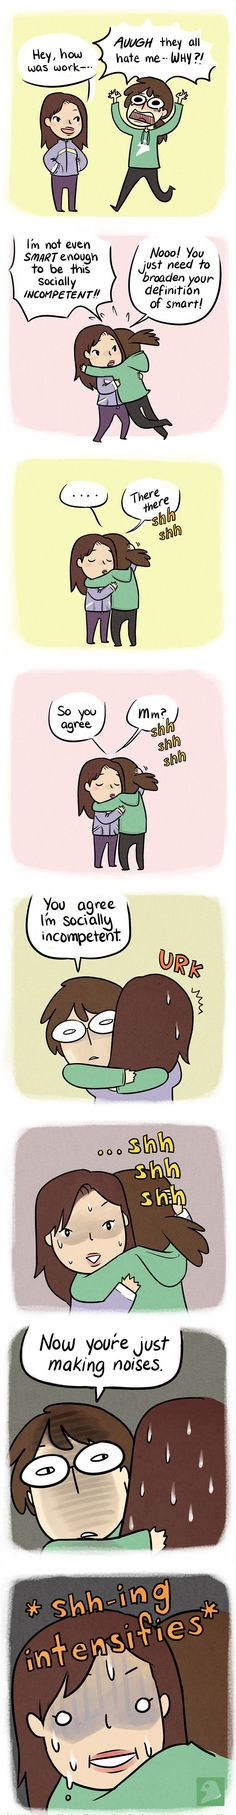 10+ Hilarious Comics For Socially Awkward People